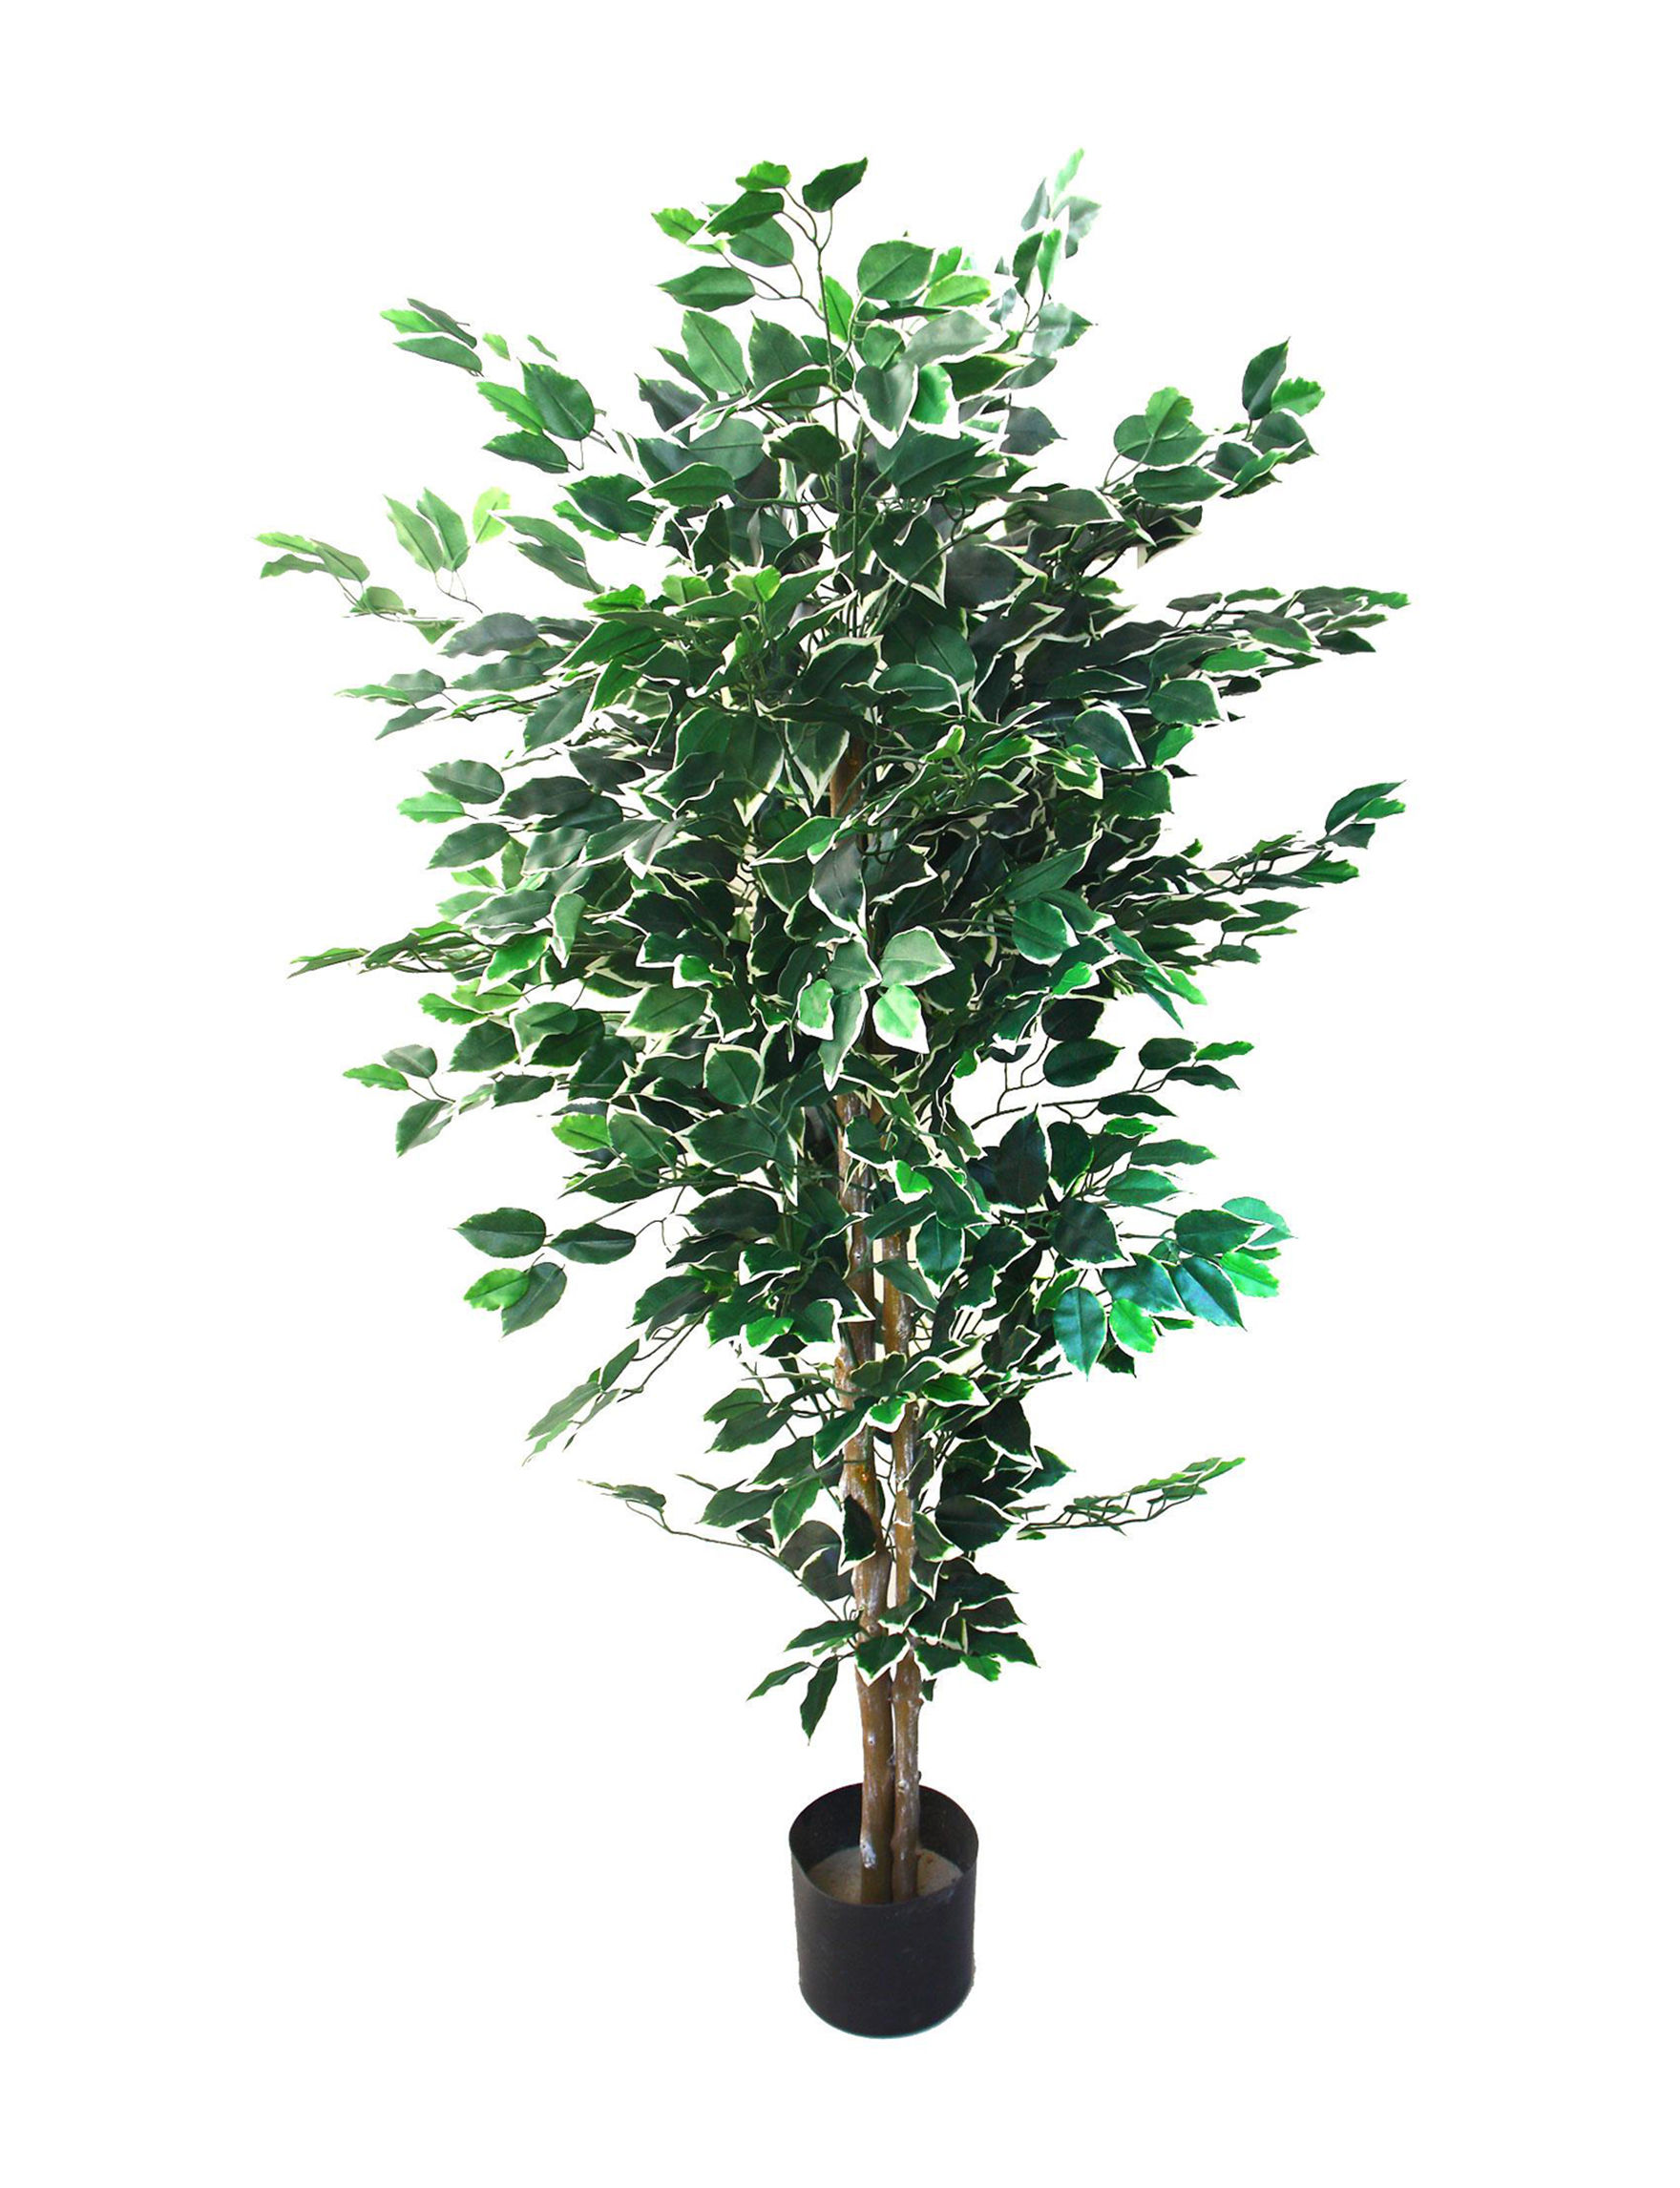 Pure Garden Green Faux Plants Outdoor Decor